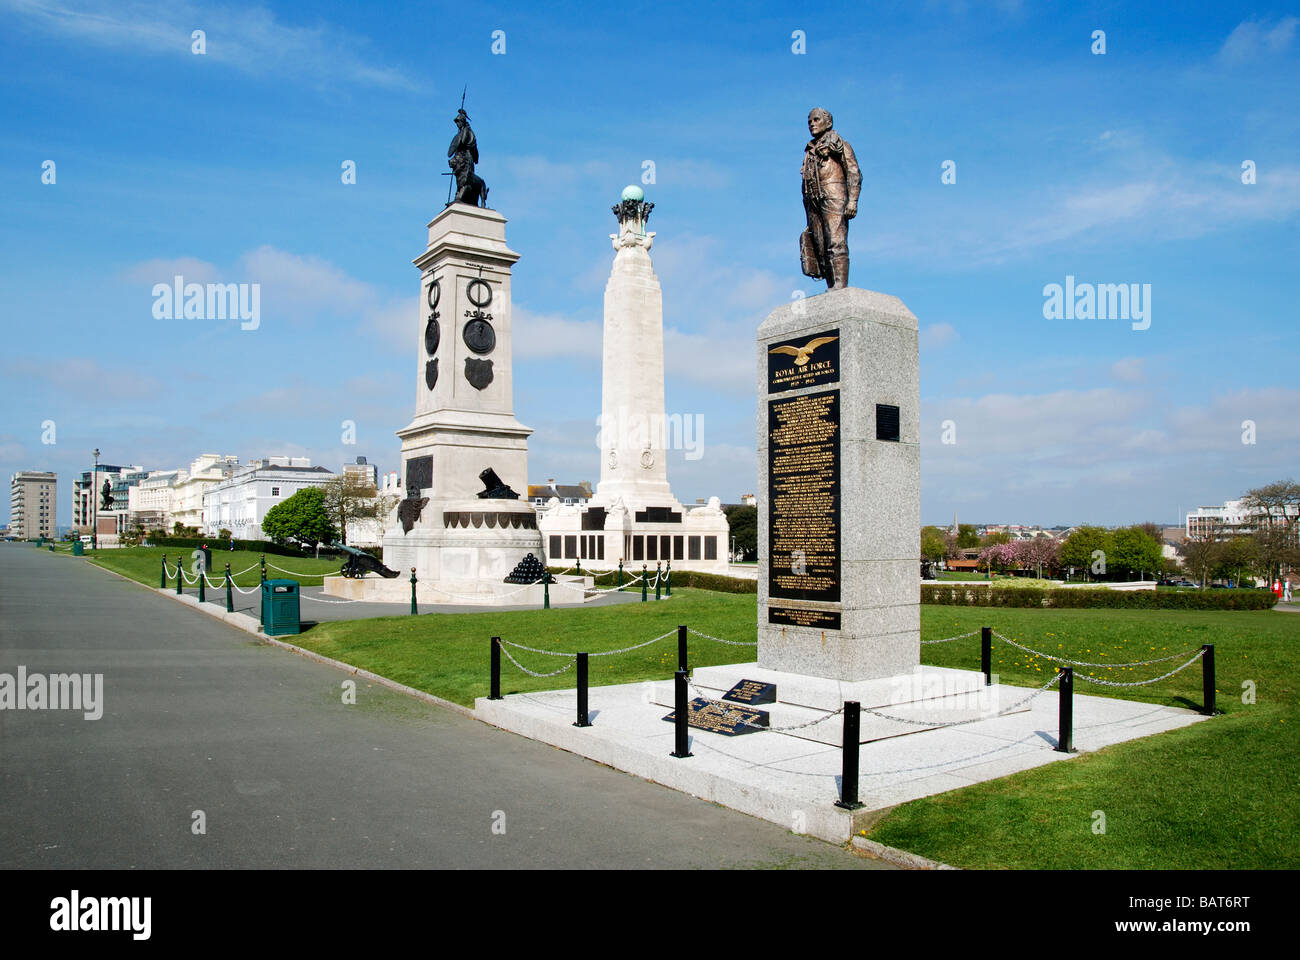 the war memorials on the hoe at plymouth,devon,uk - Stock Image